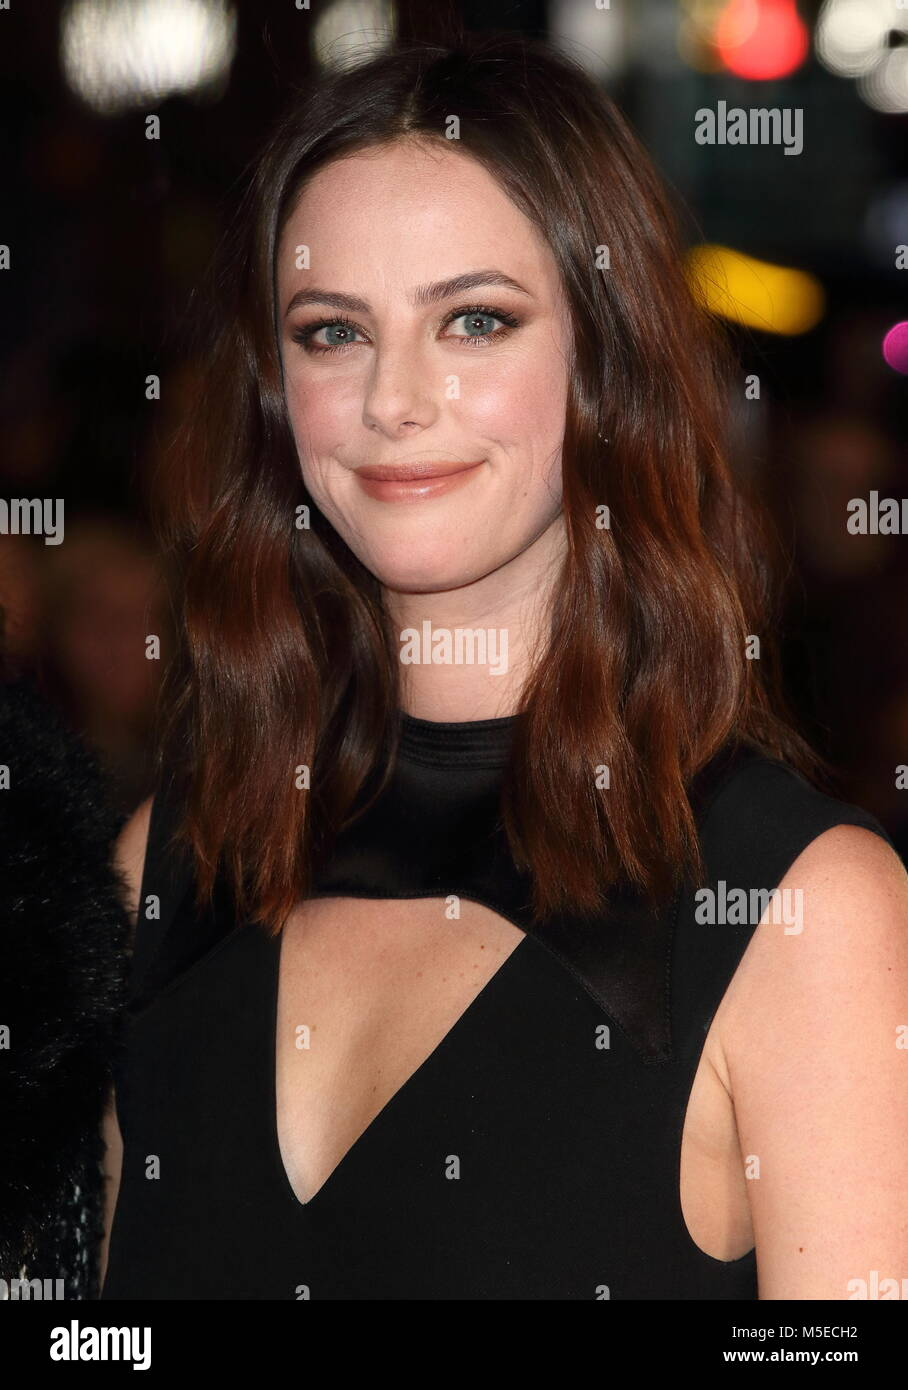 Maze Runner: The Death Cure UK Fan Screening at Vue West End in Leicester Square - Arrivals  Featuring: Kaya Scodelario - Stock Image